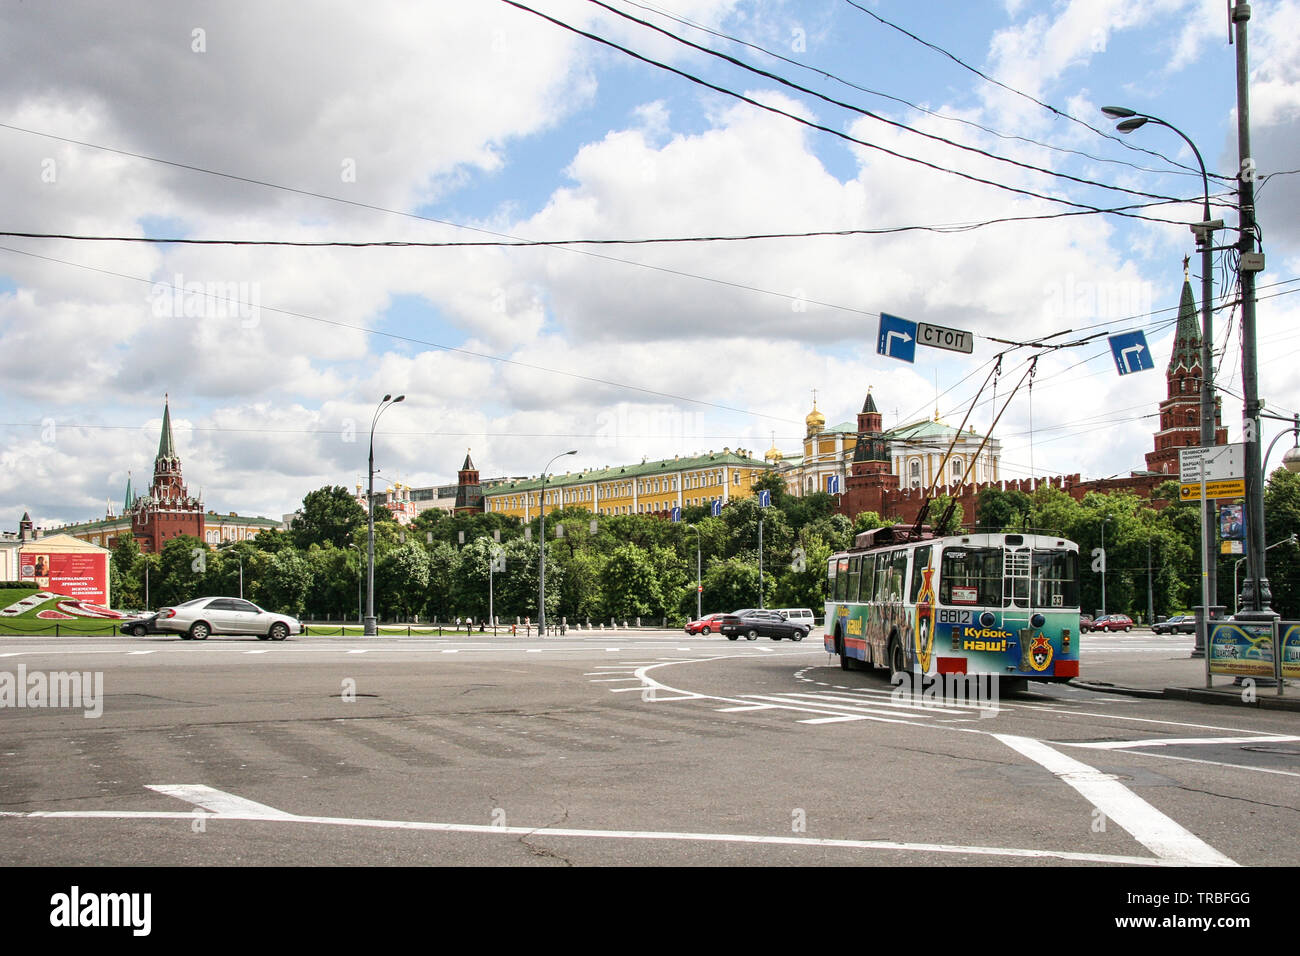 View of Kremlin in Moscow, Russian Federation from intersection of Lebyazhiy Pereulok - Stock Image